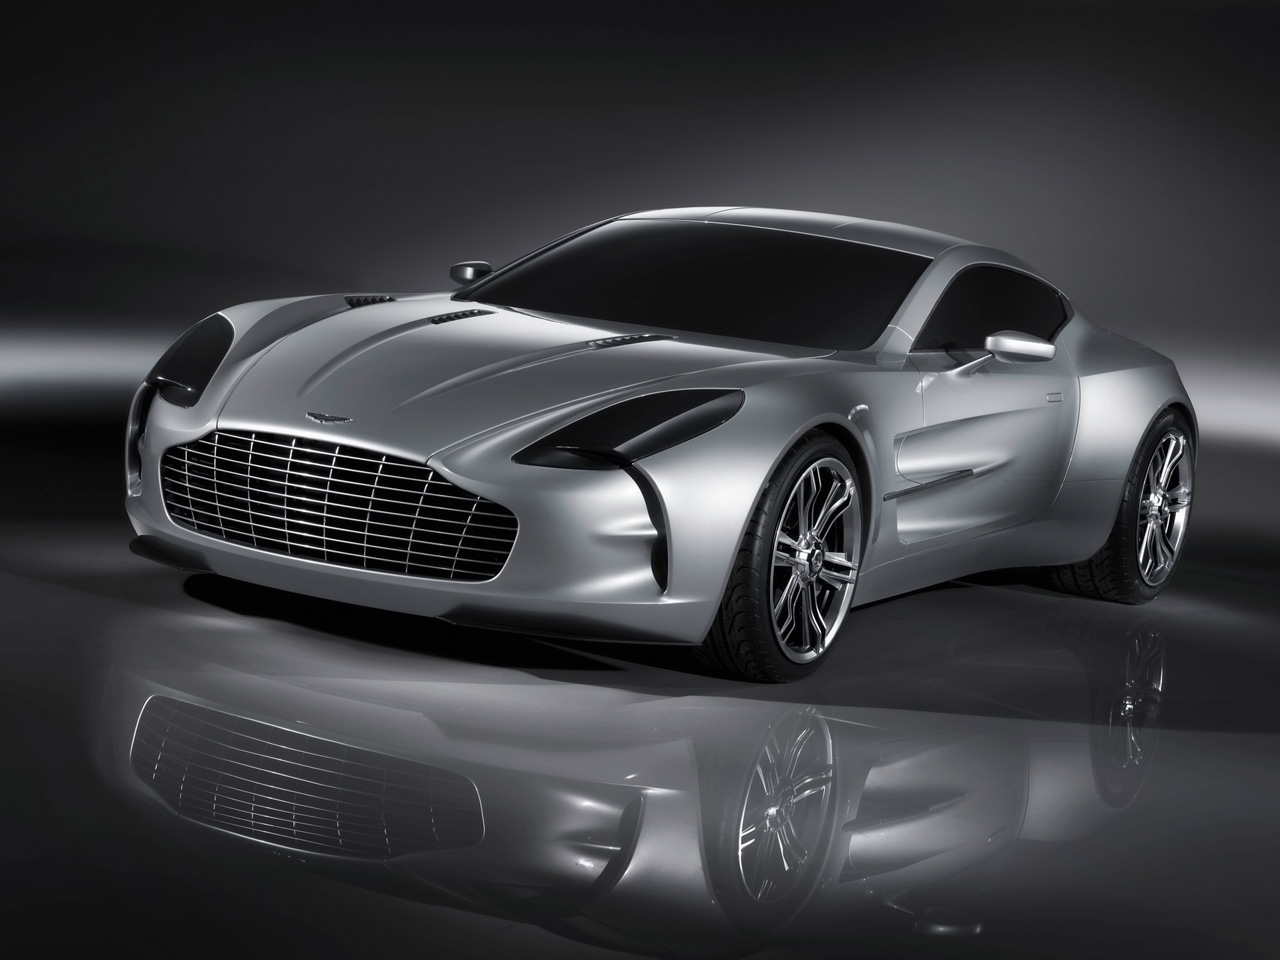 Aston Martin One-77 PHOTO: TheCarbonFiberJournal